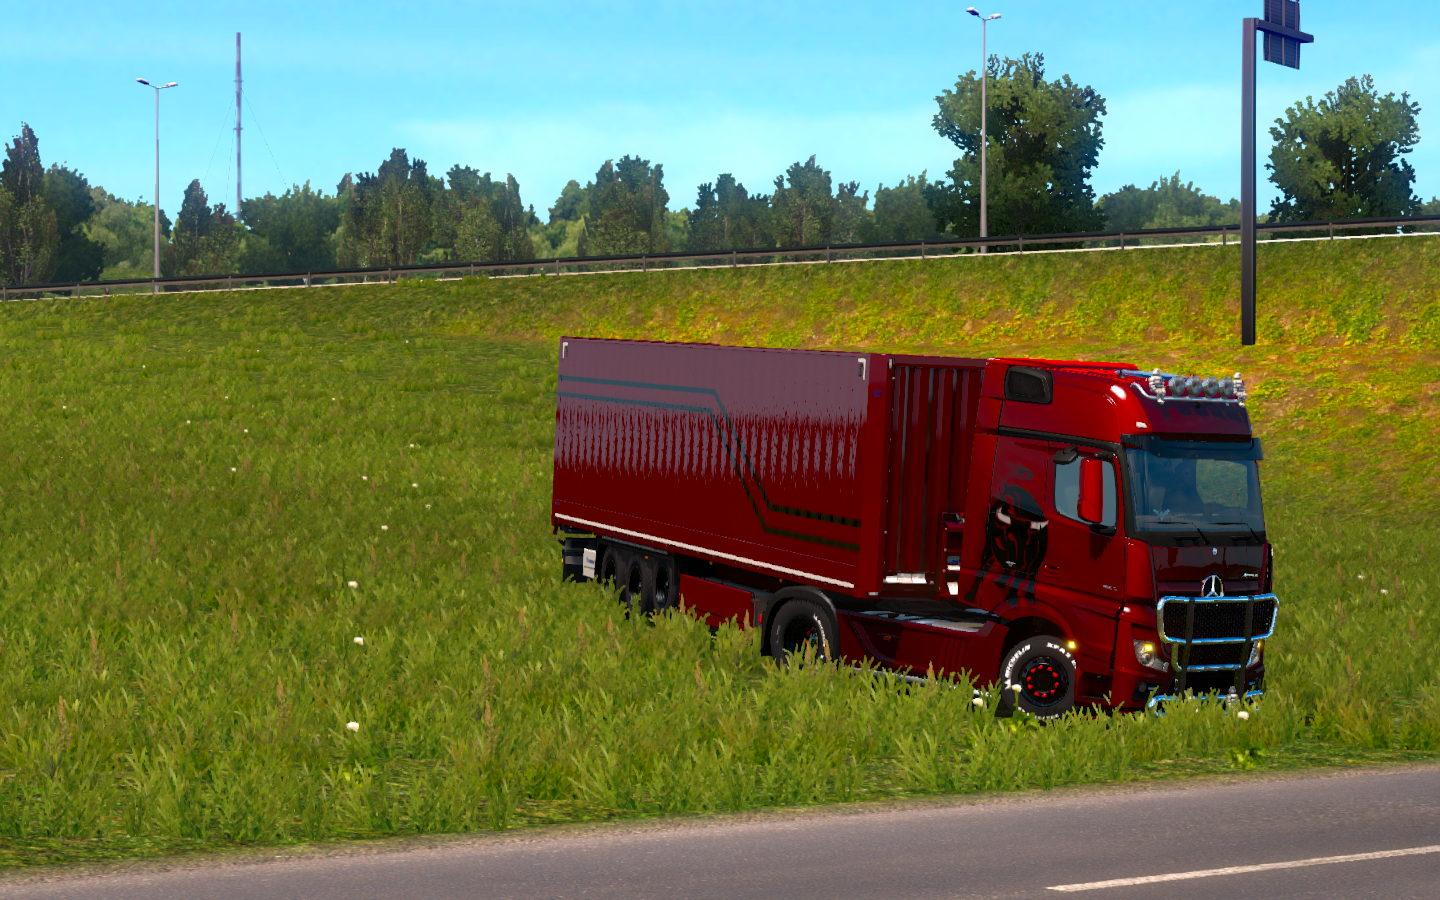 ets2_20181214_002343_00.png